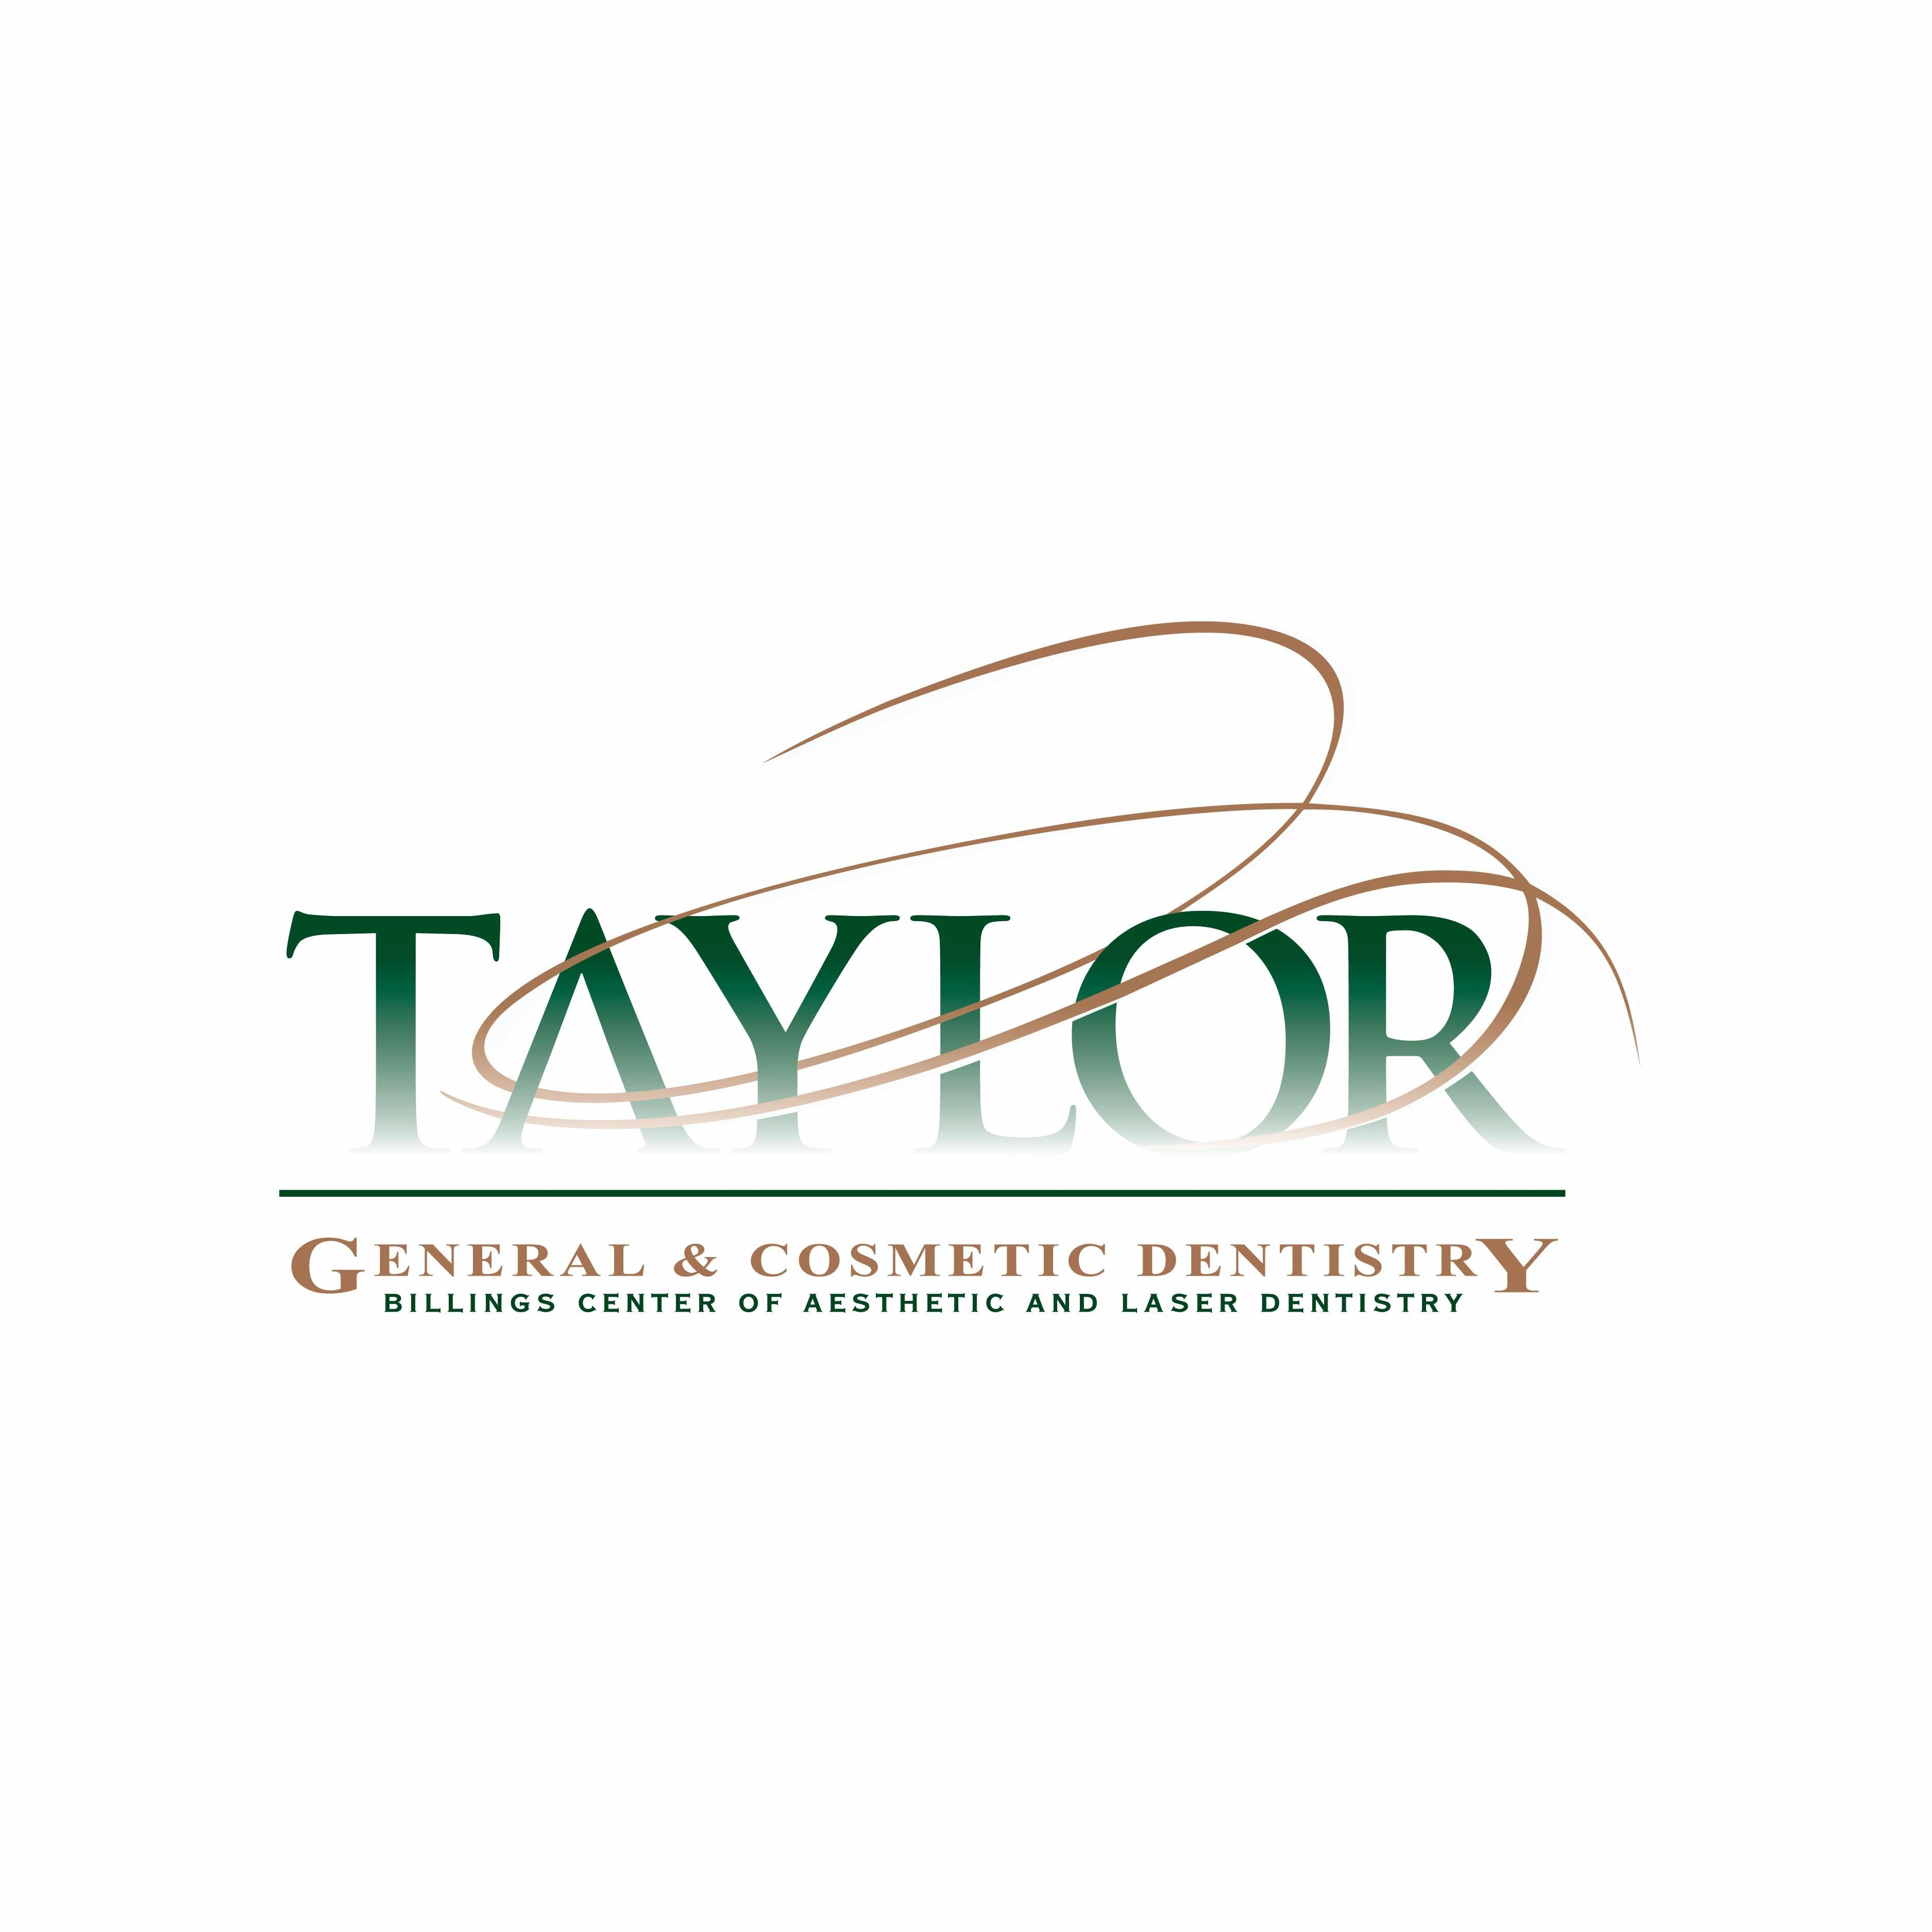 Taylor General & Cosmetic Dentistry - Billings, MT - Dentists & Dental Services